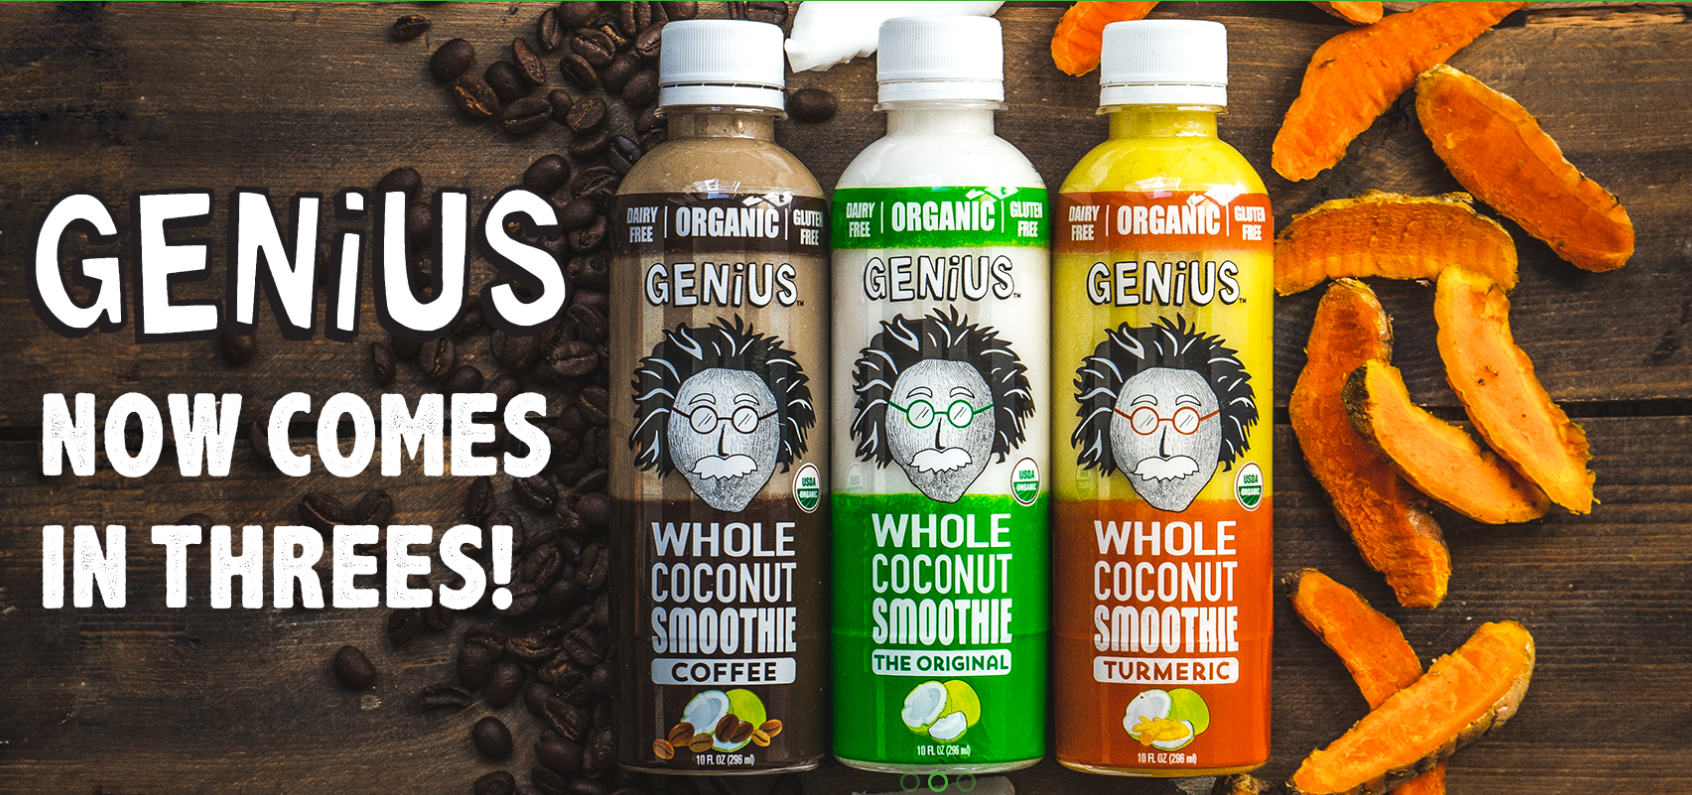 Genius Coconut Smoothie   We combine two simple ingredients: organic coconut water and organic coconut meat. We blend both ingredients to make a delicious, creamy, whole coconut smoothie